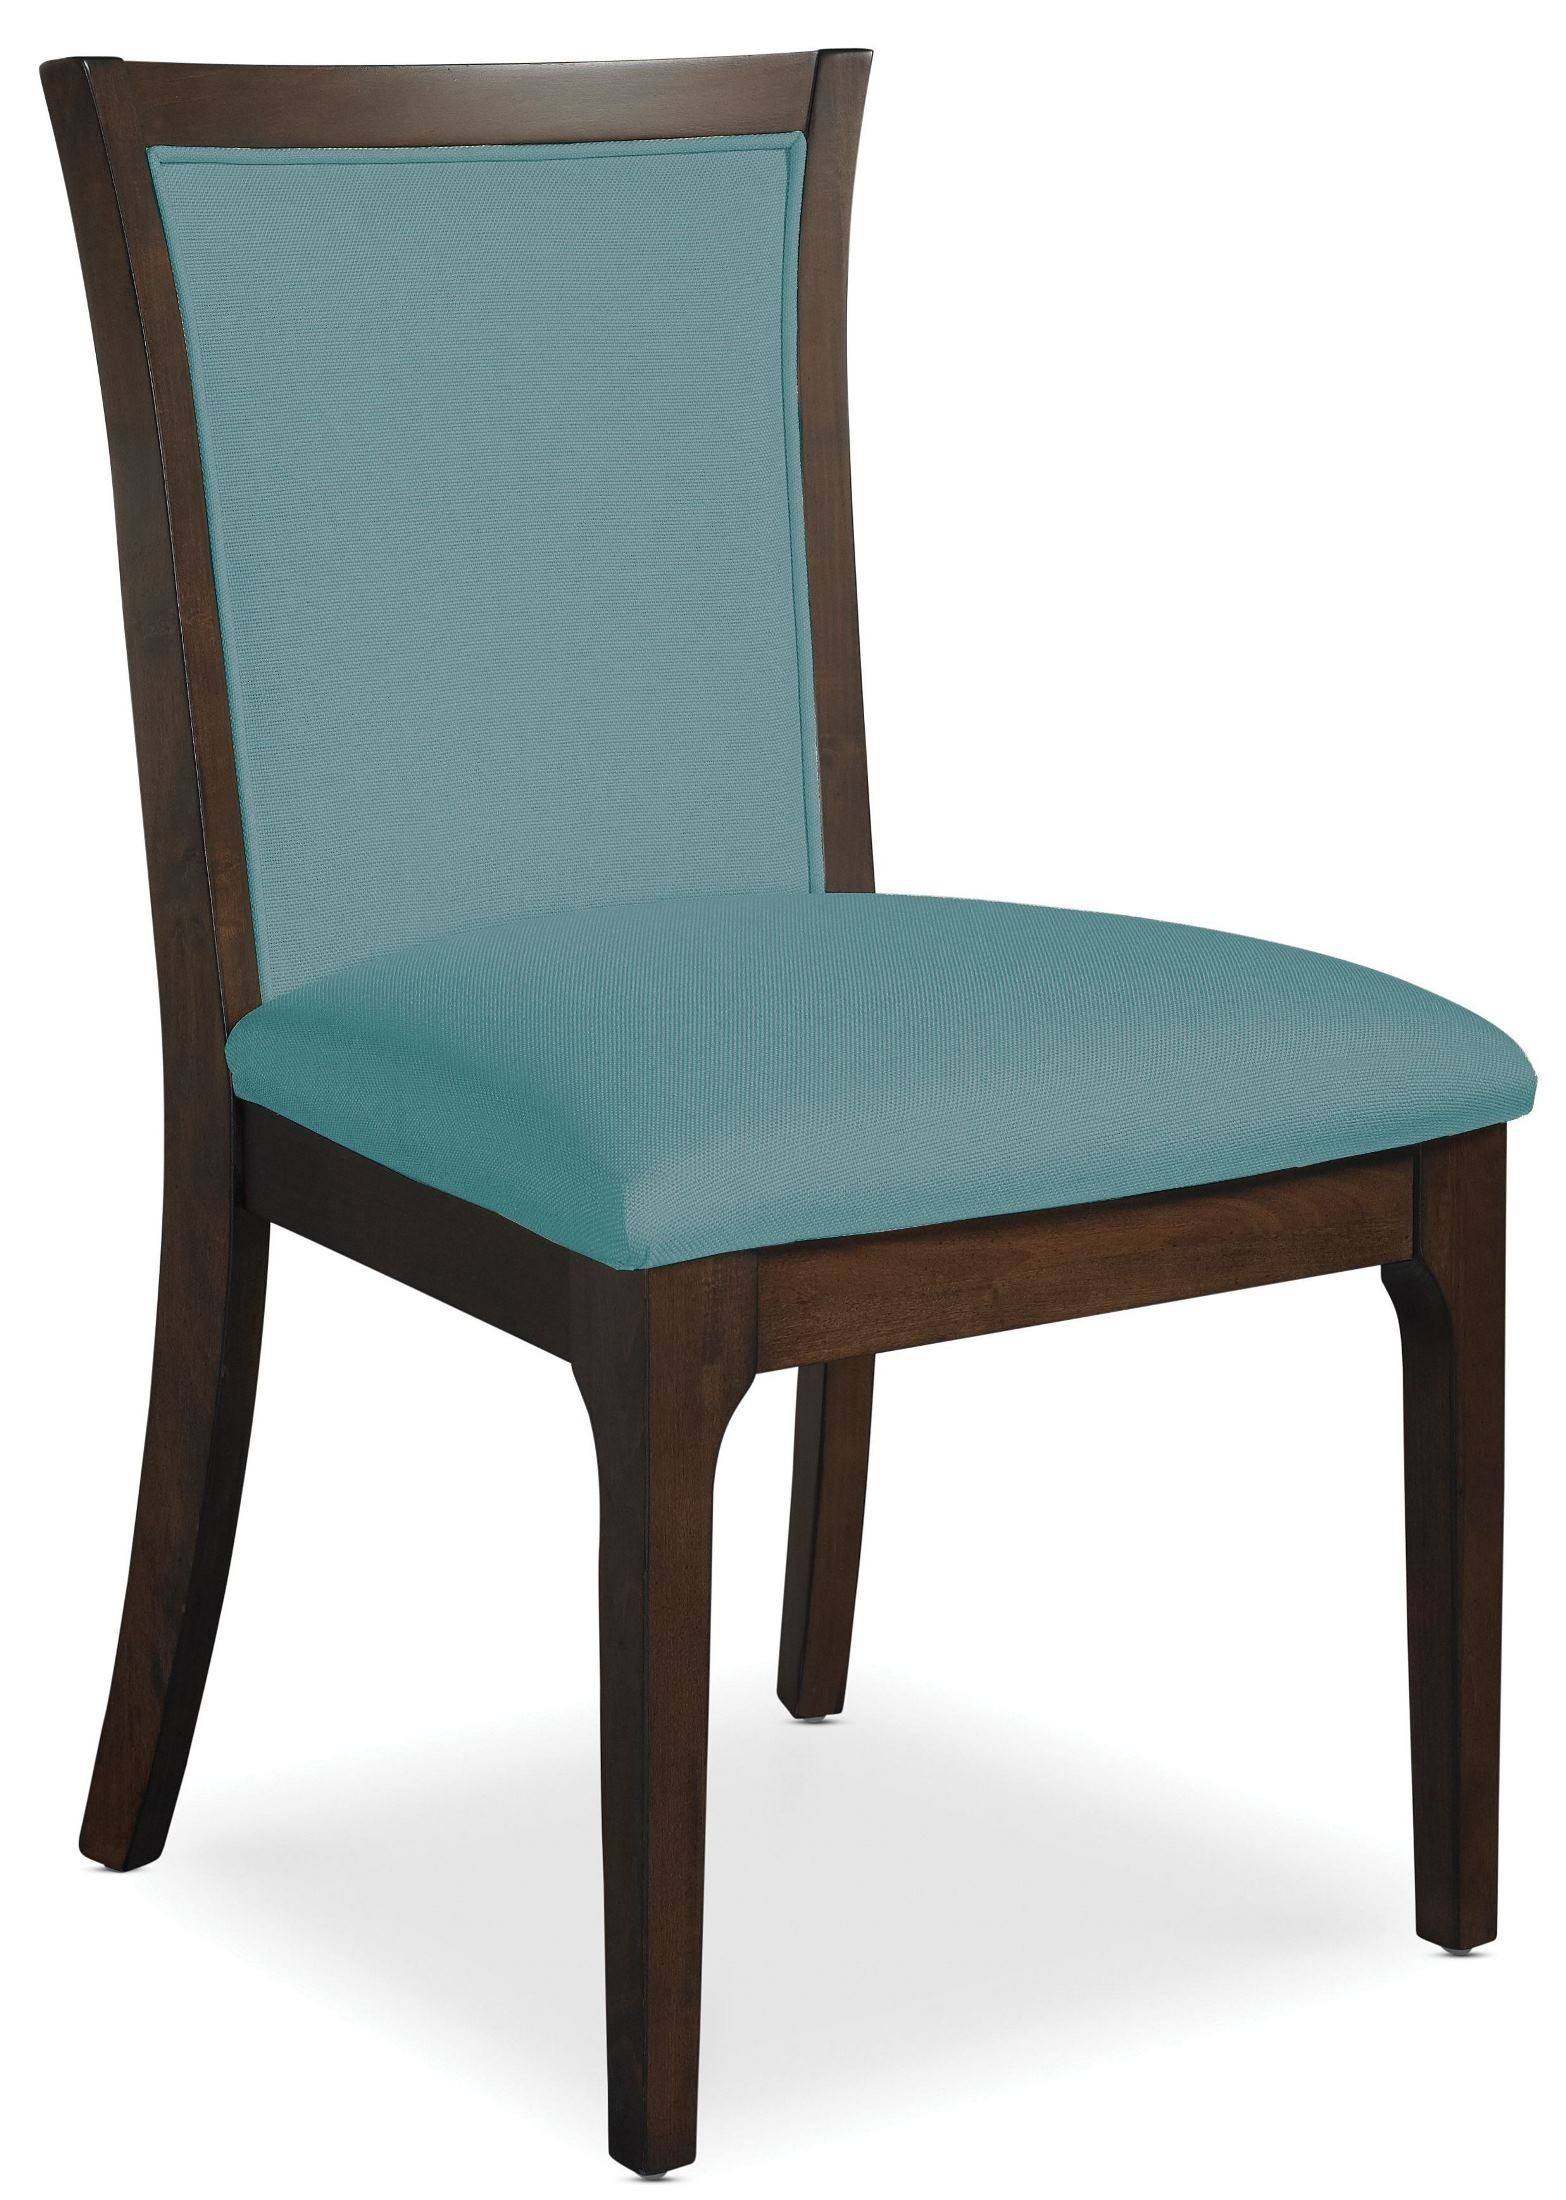 Teal Chair Improv In B Clear Brown And Maxi Teal Fabric Side Chair